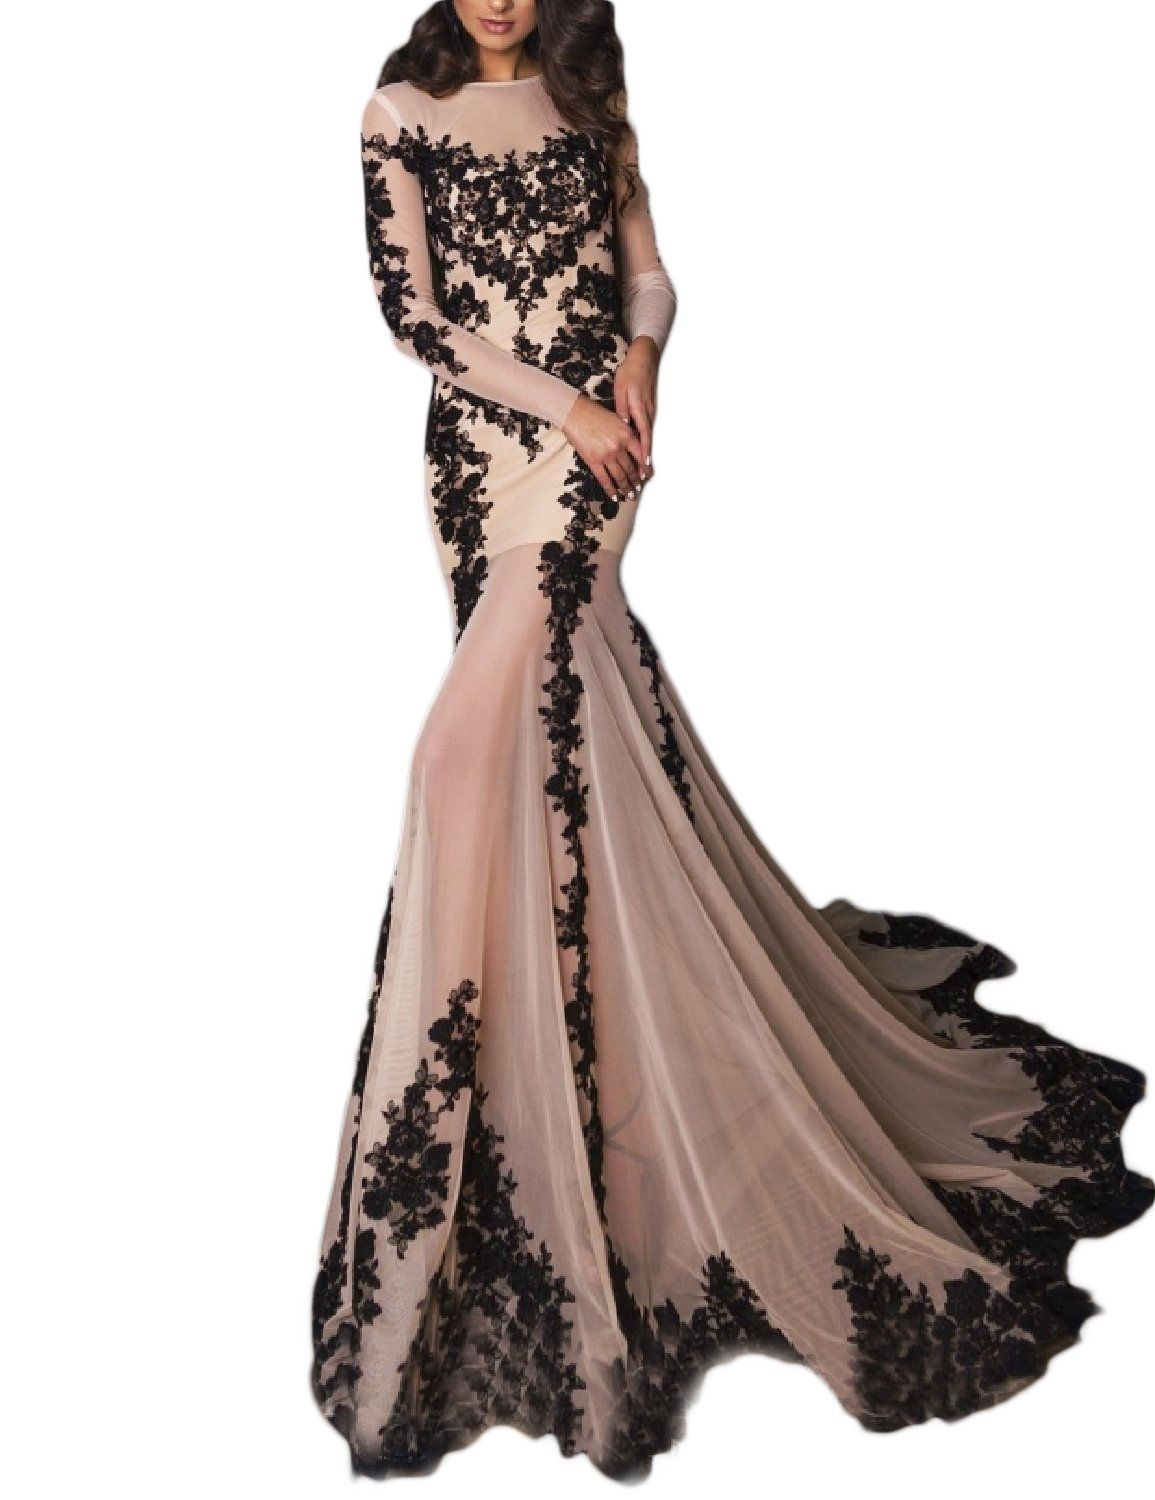 21e6bf39200 OYISHA Womens Long Sleeve Mermaid Wedding Evening Gown Appliqued Party Dress  EV5 Nude Black 16